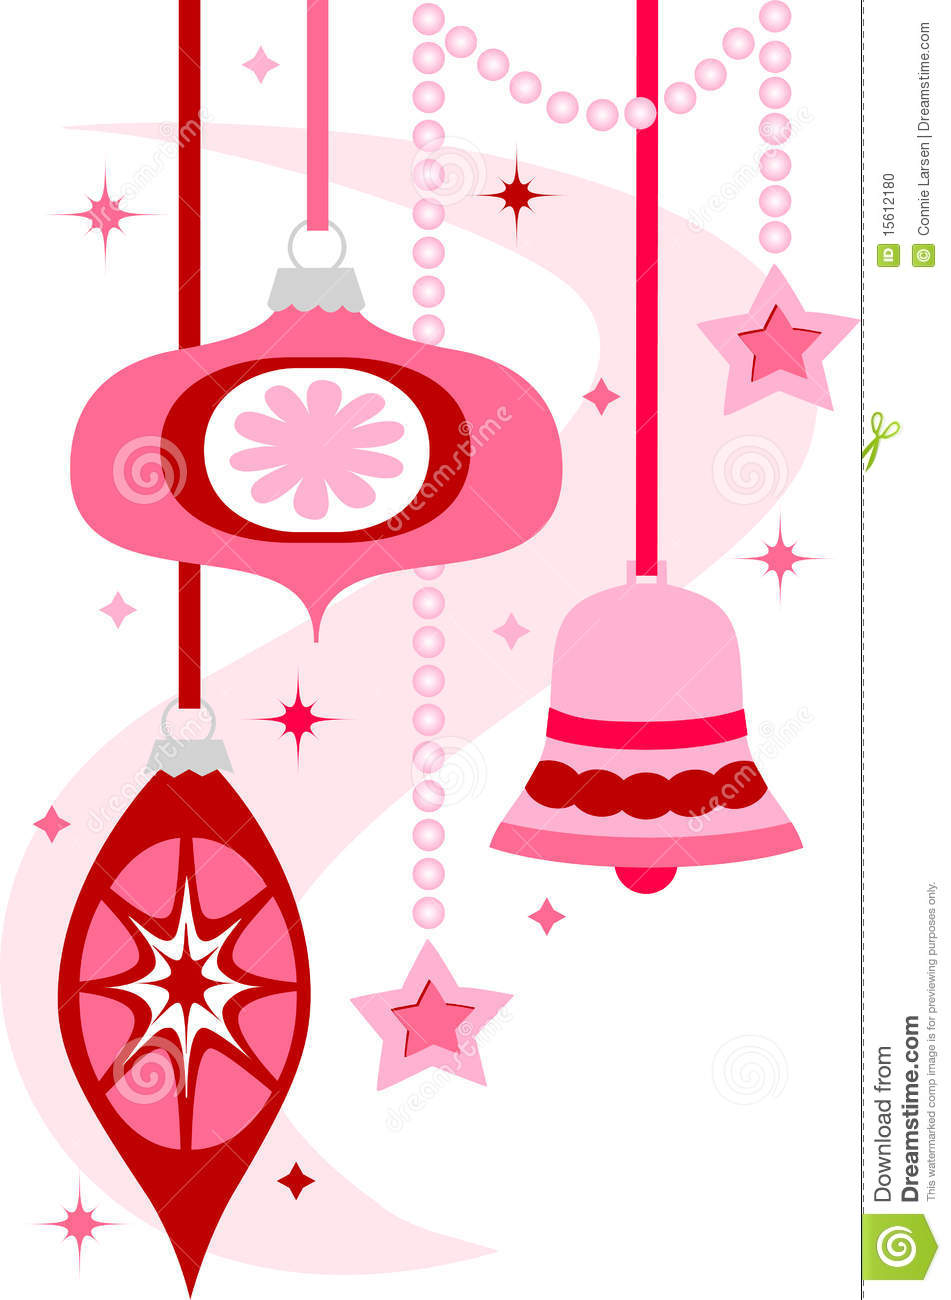 Style Illustration Of Hanging Christmas Ornaments In Bright Pink